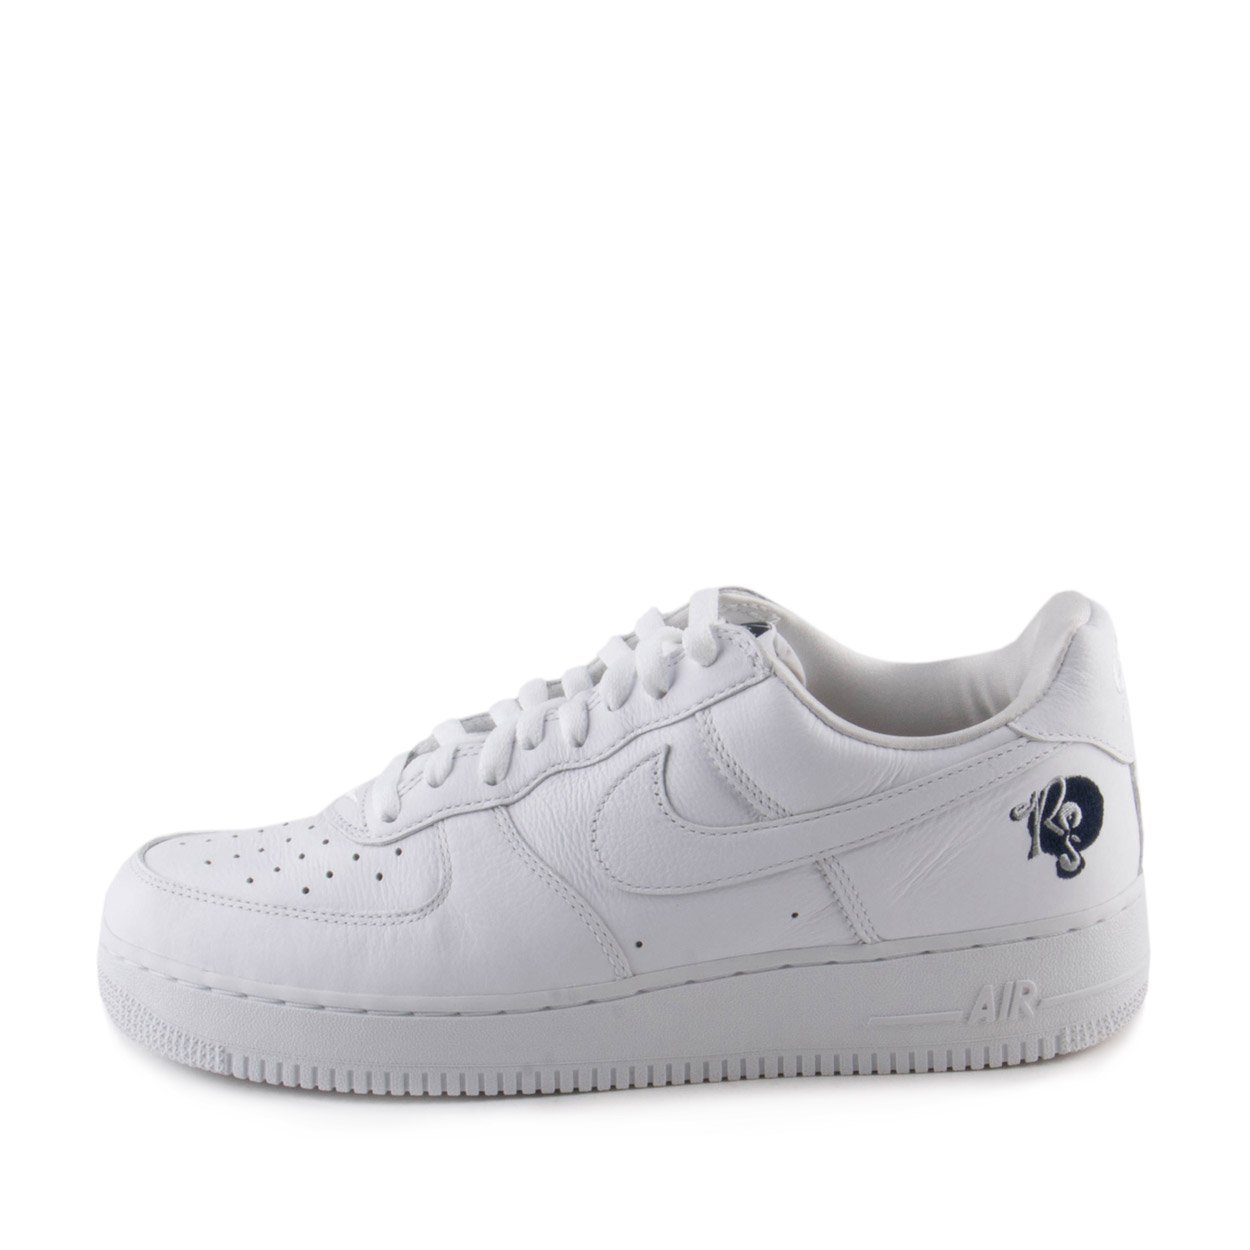 Nike Air Force 1 '07 AO1070 101